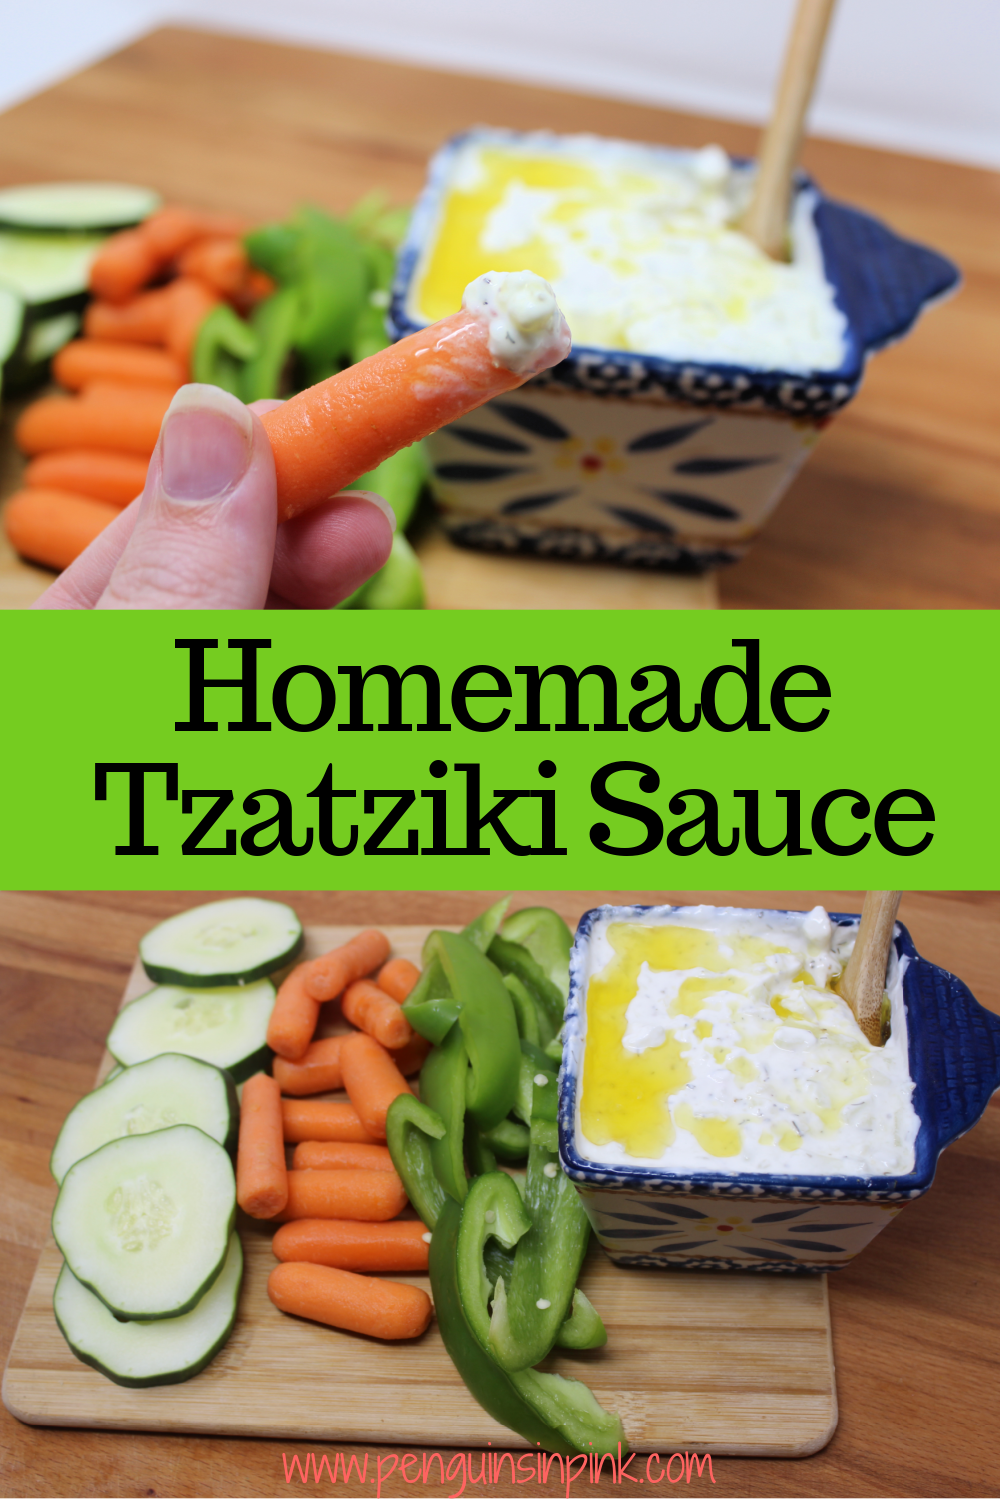 Homemade Tzatziki Sauce is a combination of Greek yogurt and cucumber with a few seasoning. It is fantastic on pitas, salads, and used as a dip.